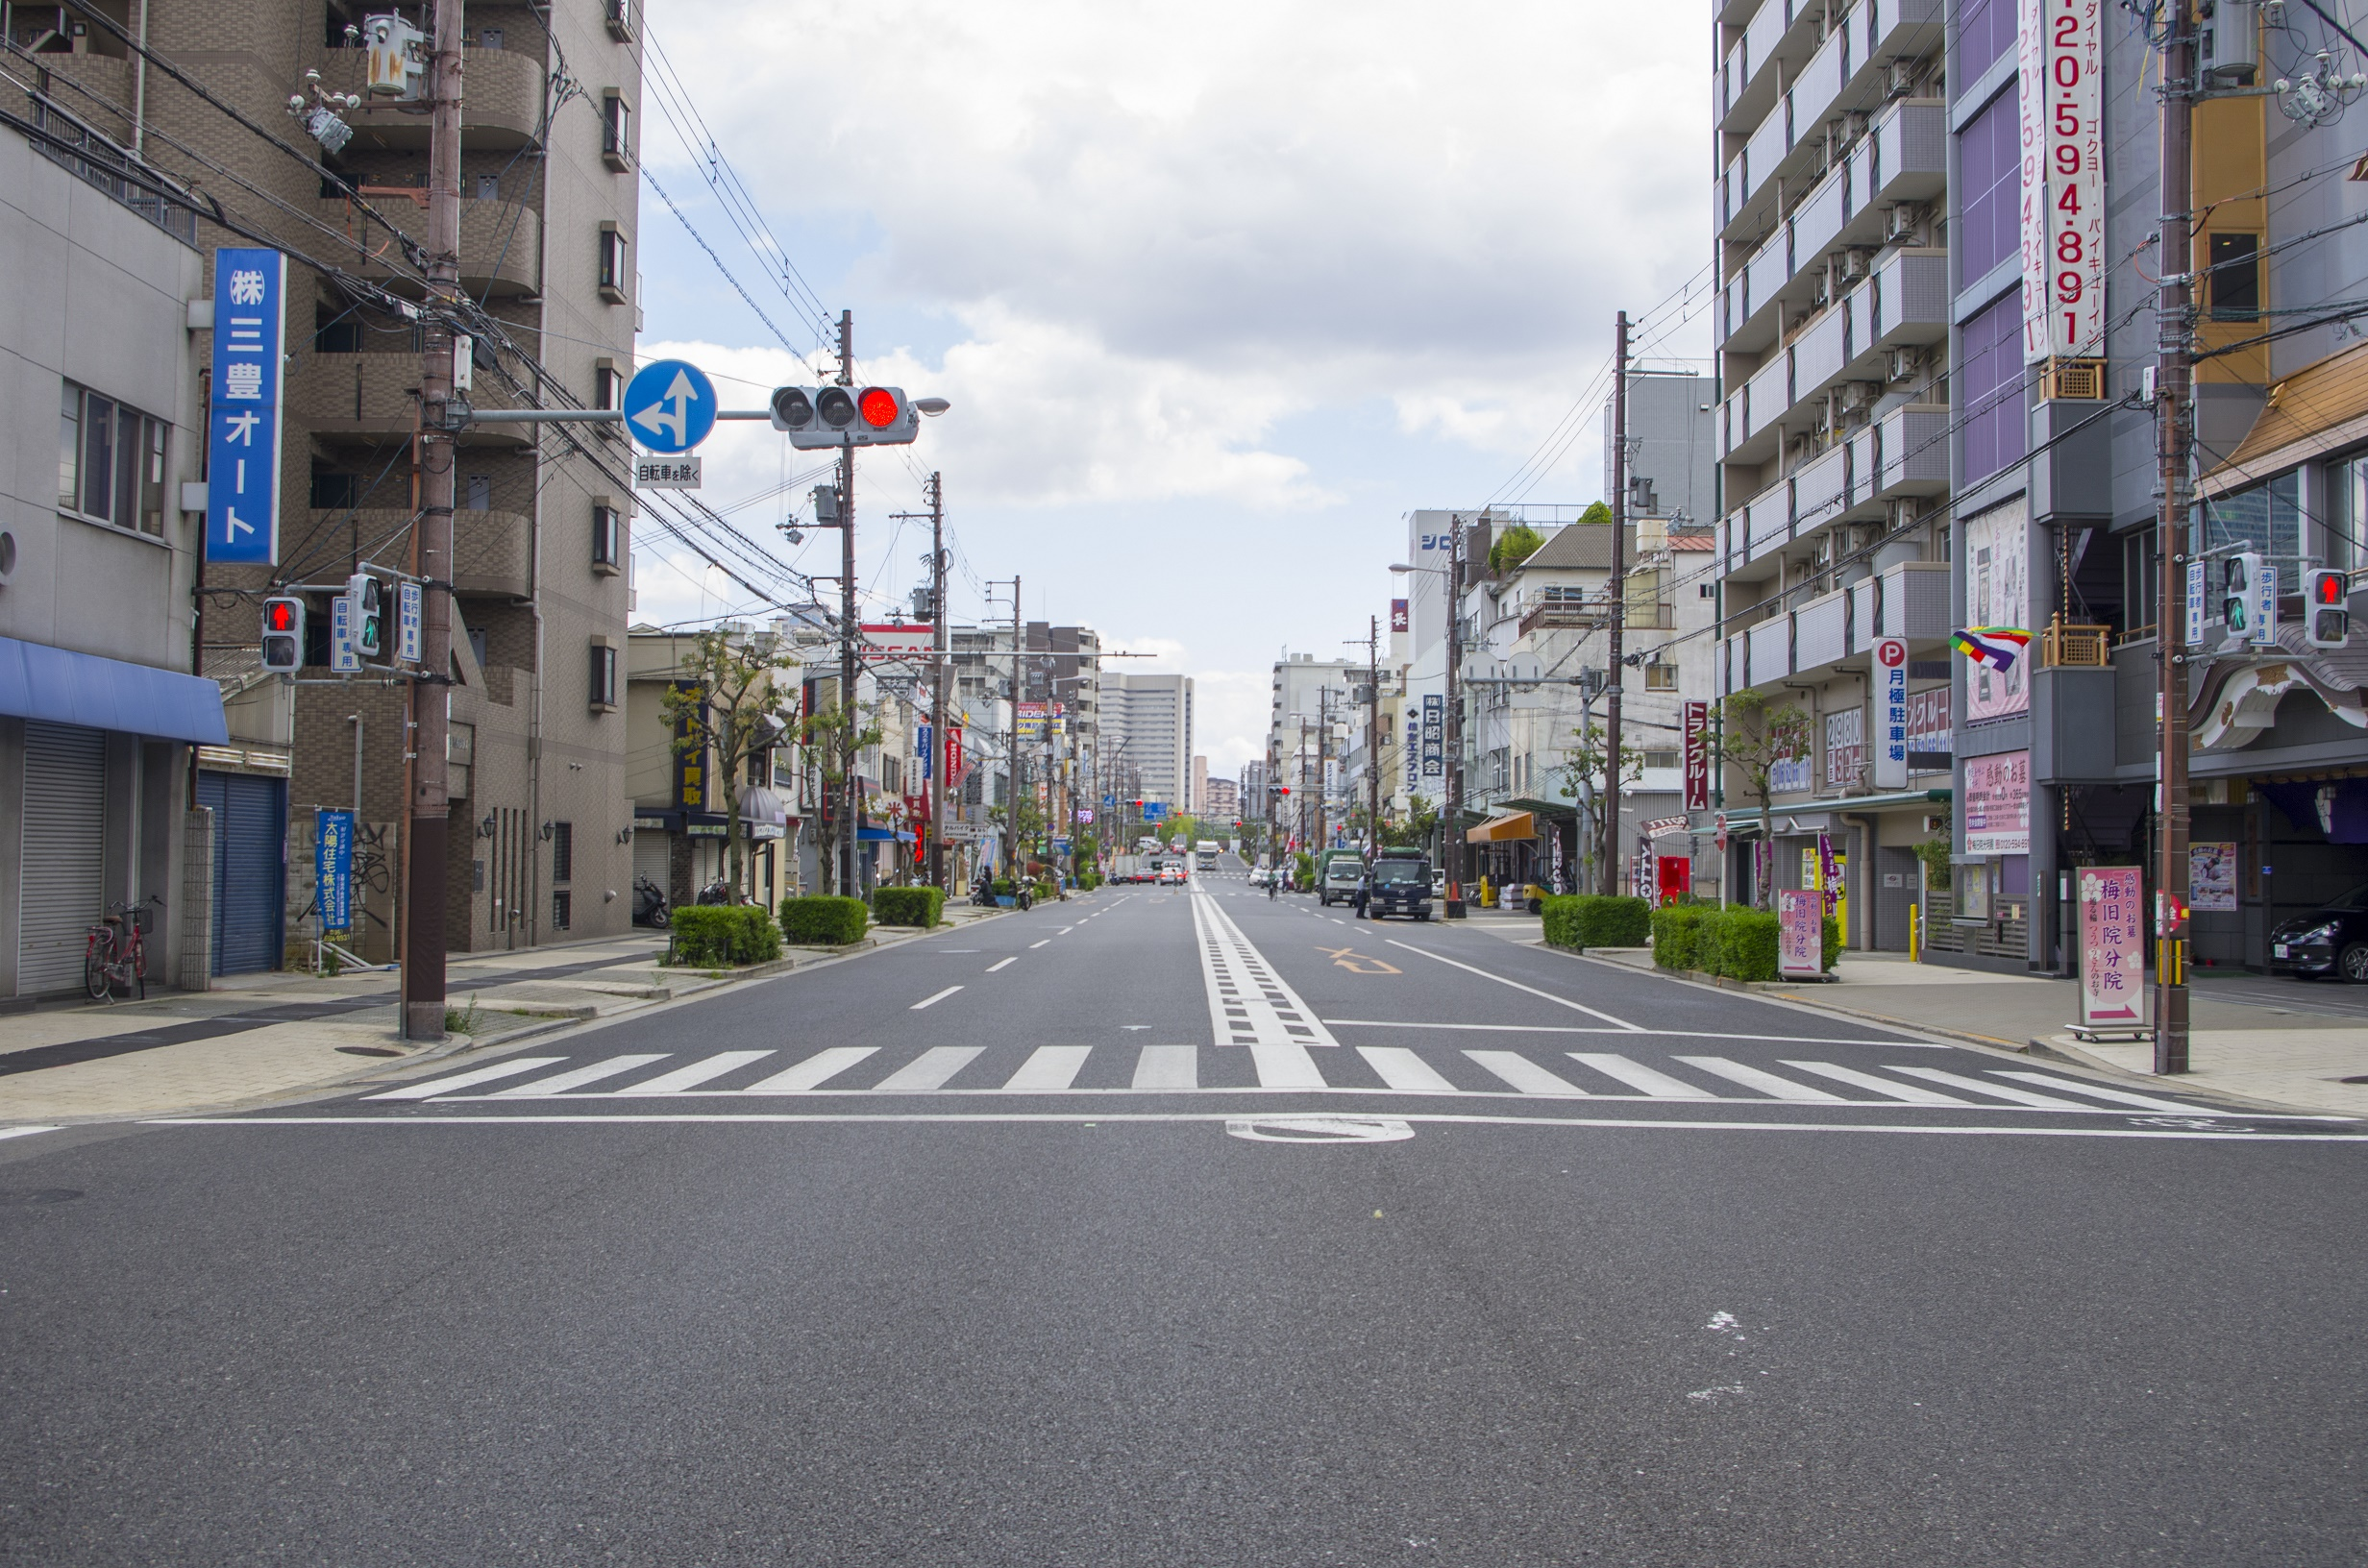 One of the streets in Osaka, close to Denden Town